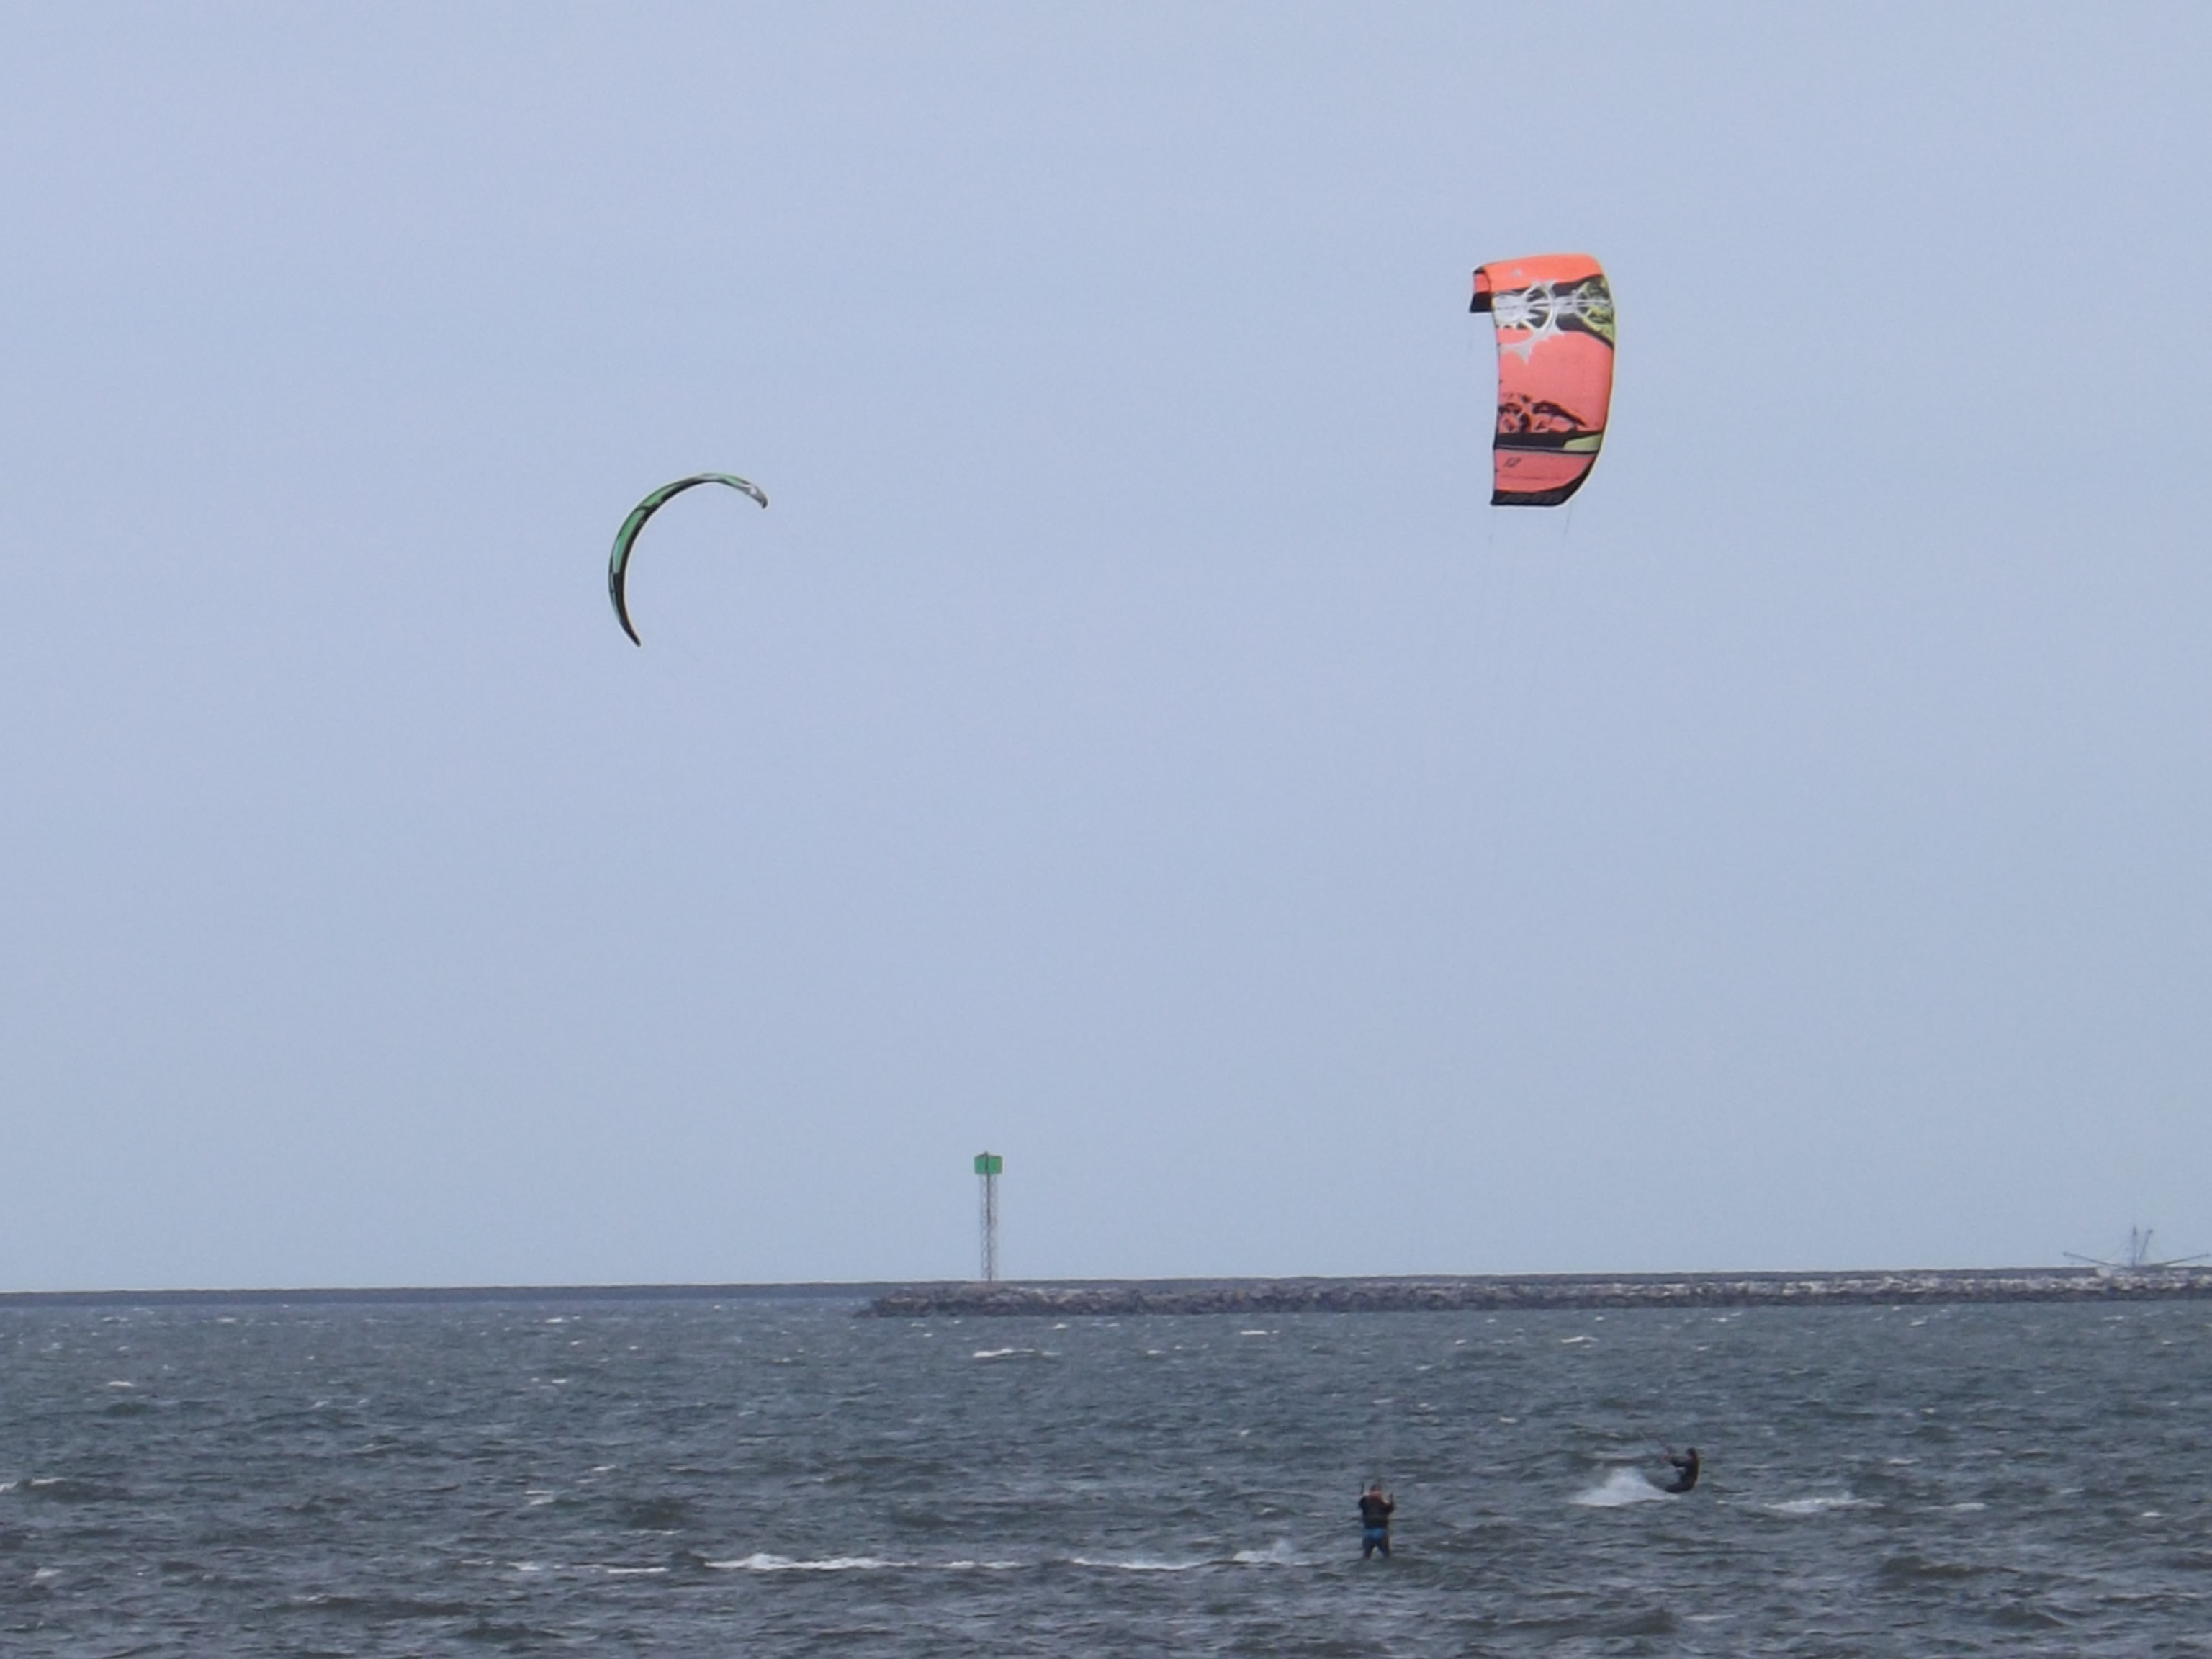 kiteboarding, delaware bay, cape may lewes ferry, inner wall, board sports, sussex county, lewes beach